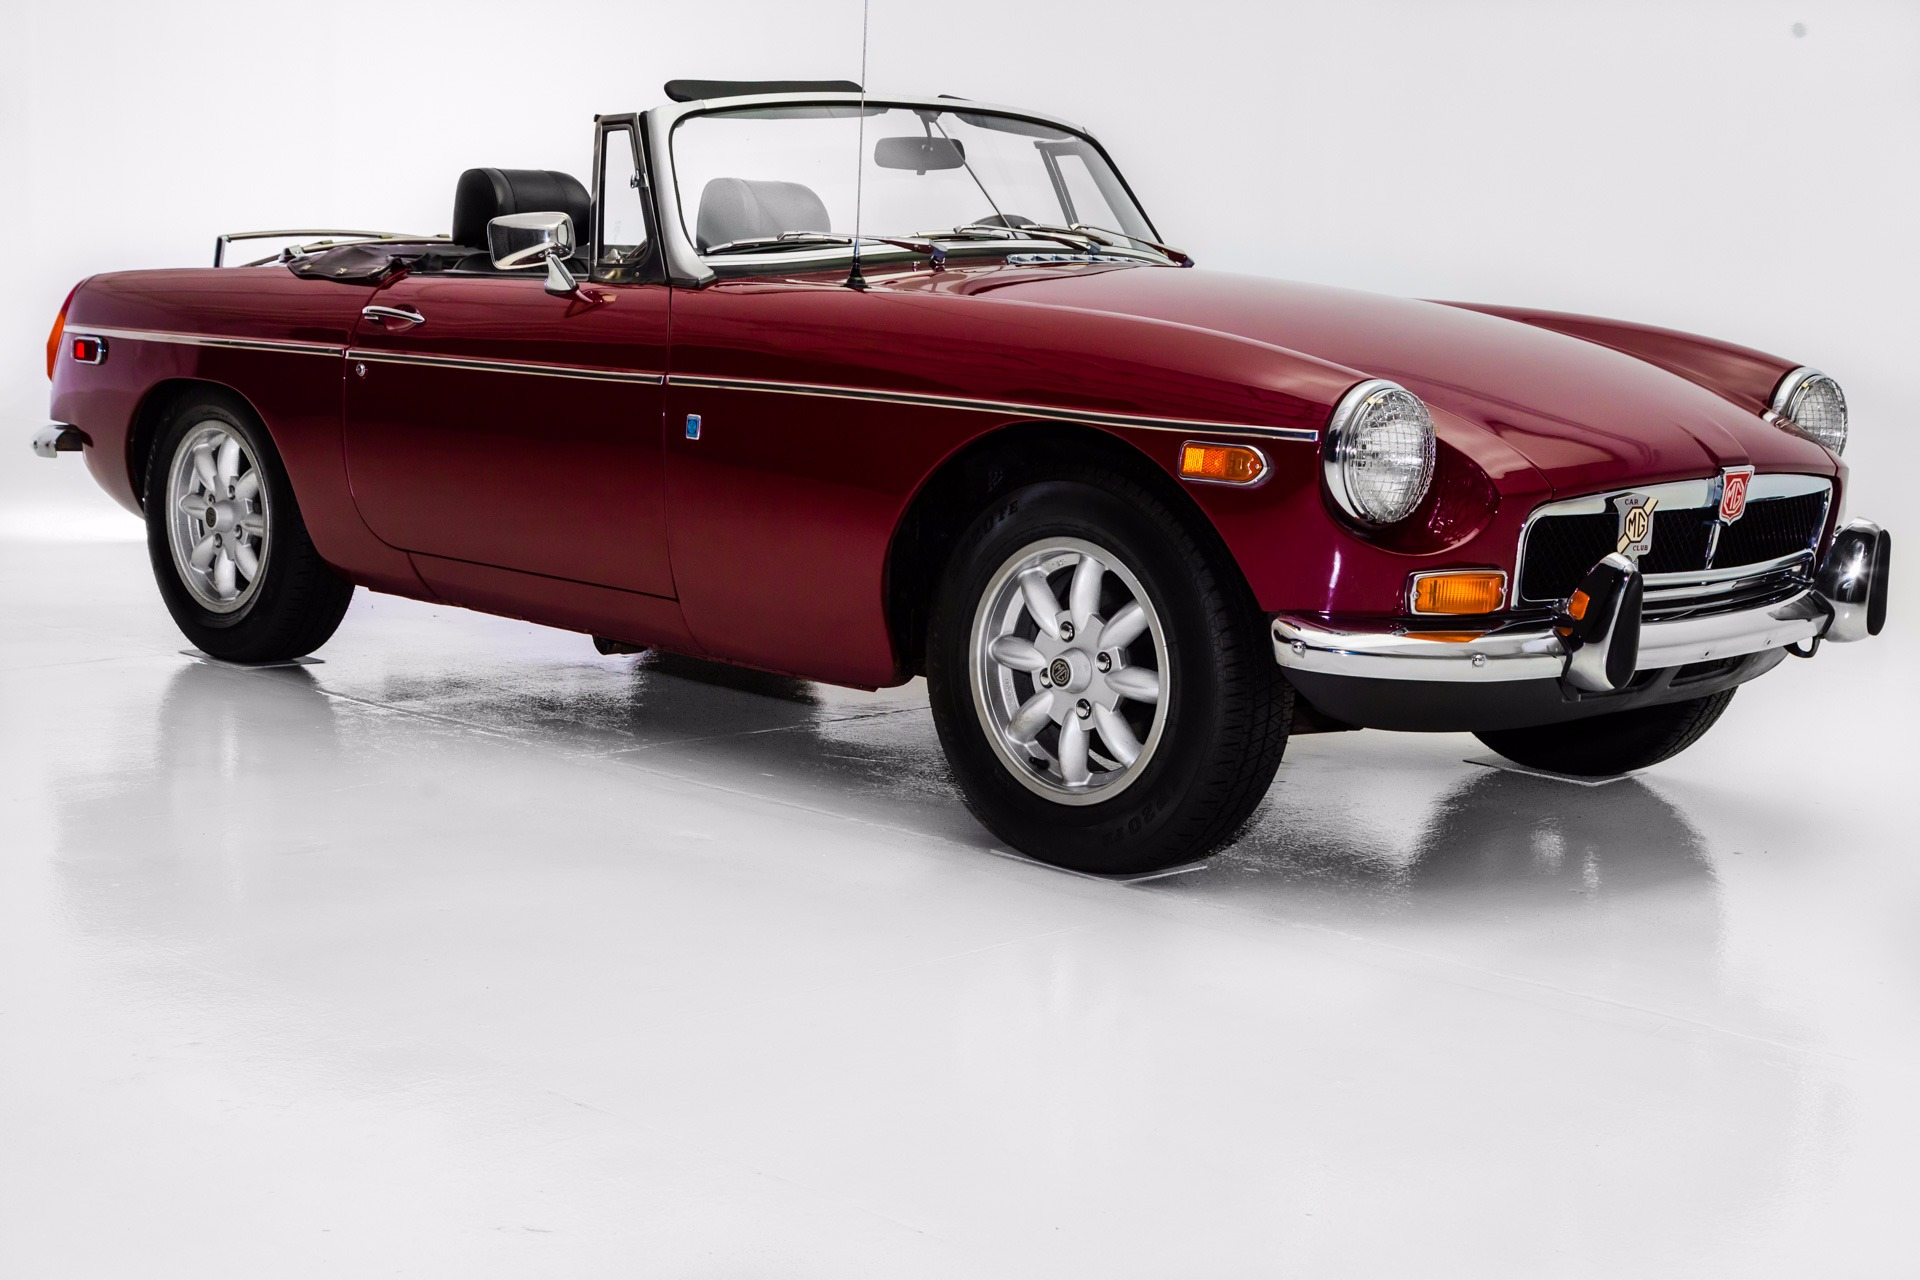 1974 MG MGB Burgundy, Chrome Bumpers, British Sports Car (WHOLESALE ...